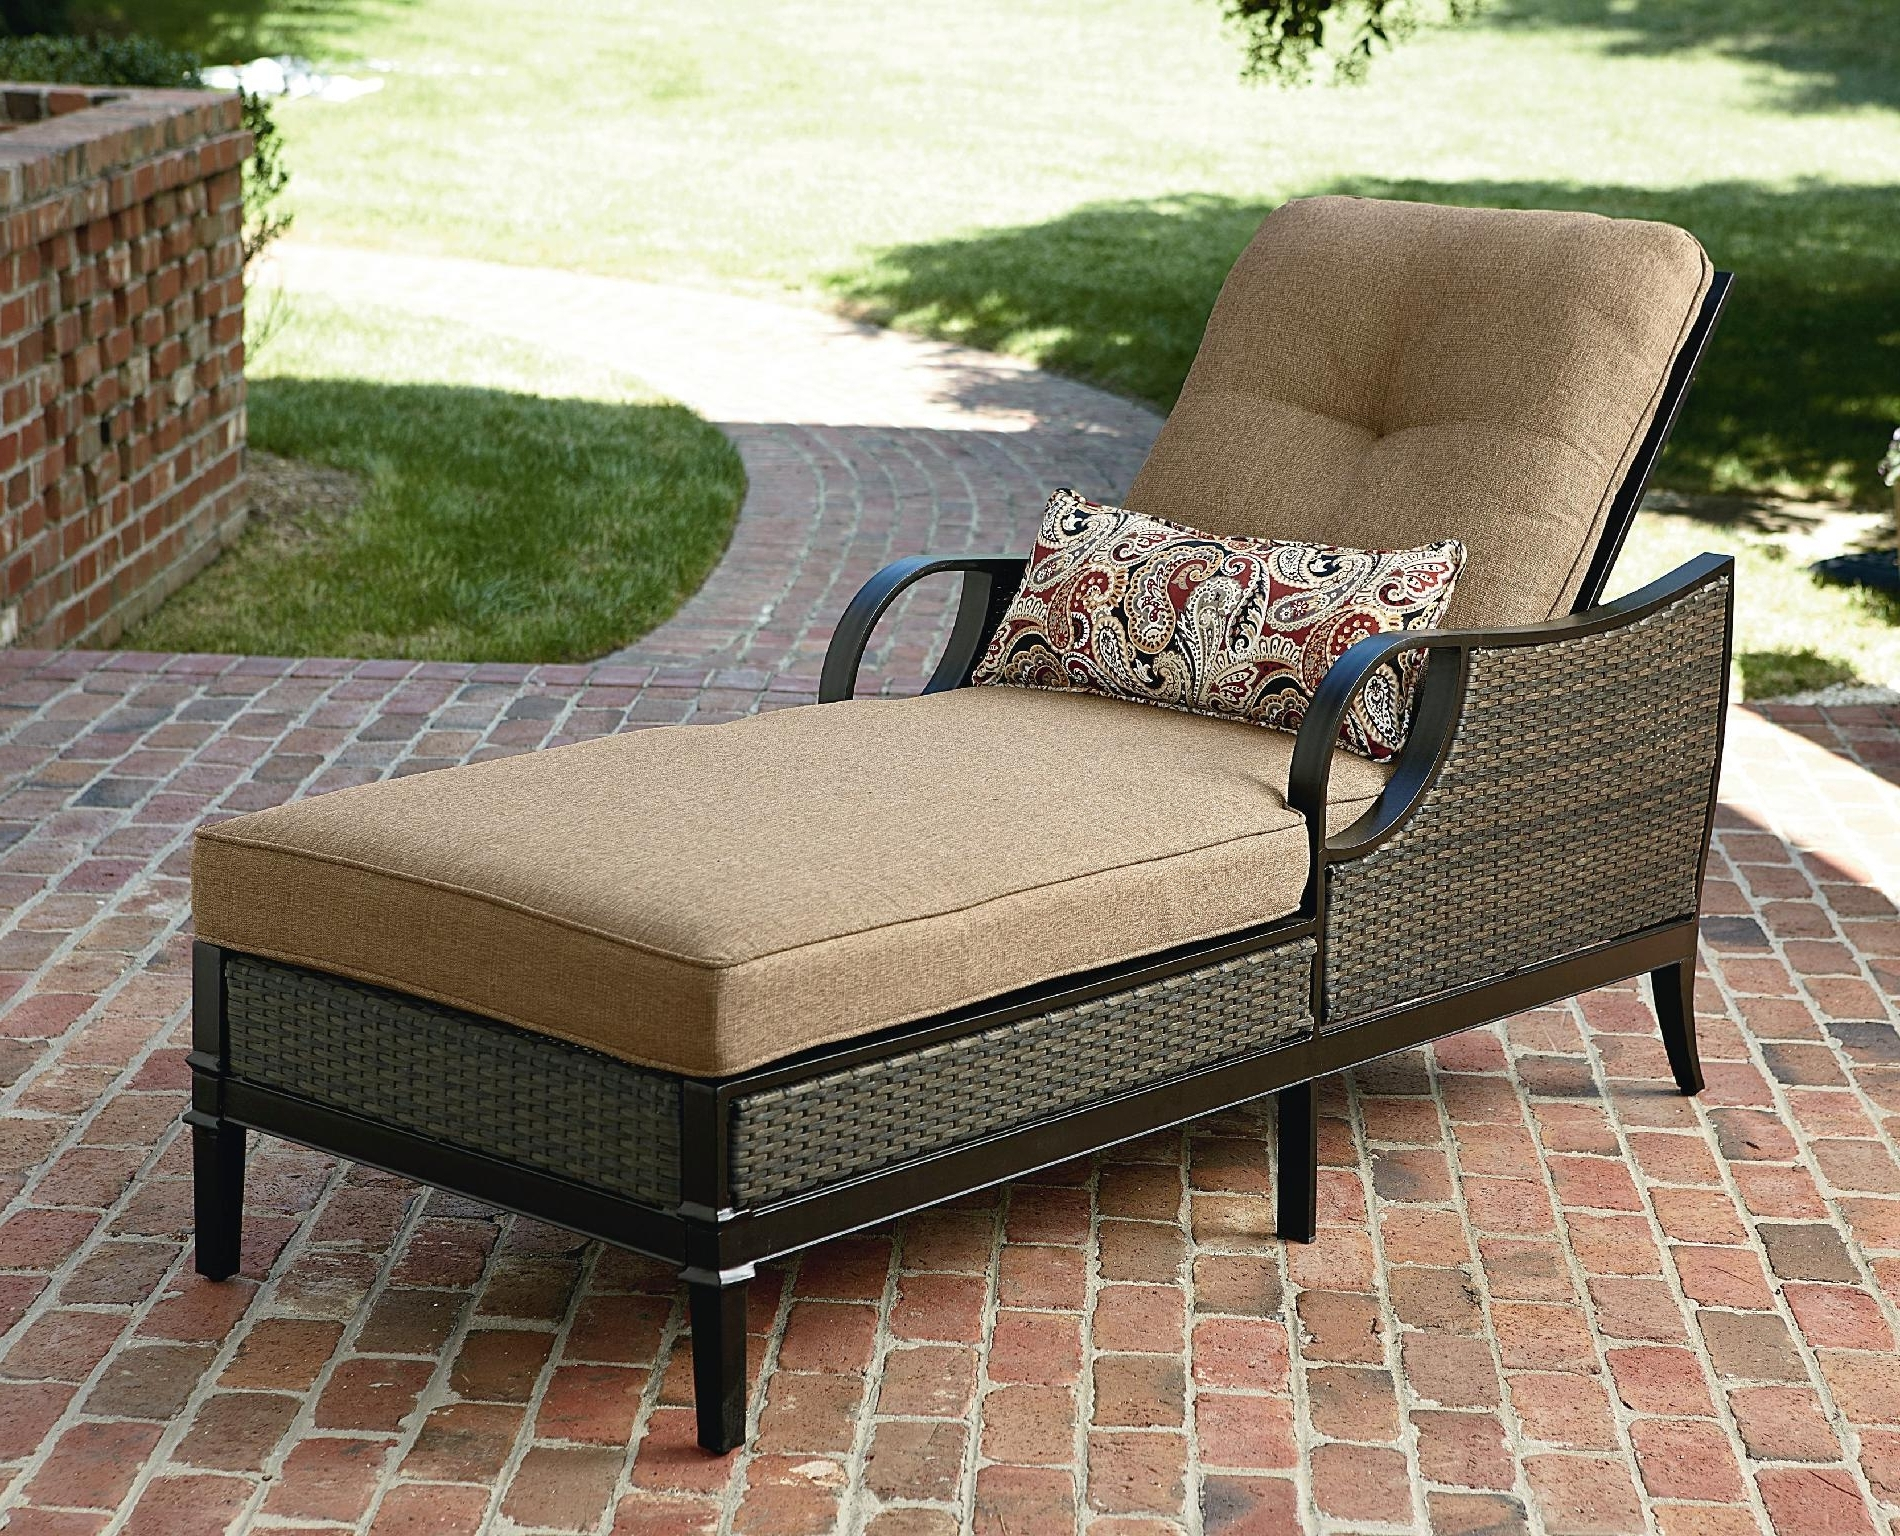 Trendy Patio Furniture Chaise Lounge Chairs • Lounge Chairs Ideas Regarding Chaise Lounge Sets (View 4 of 15)